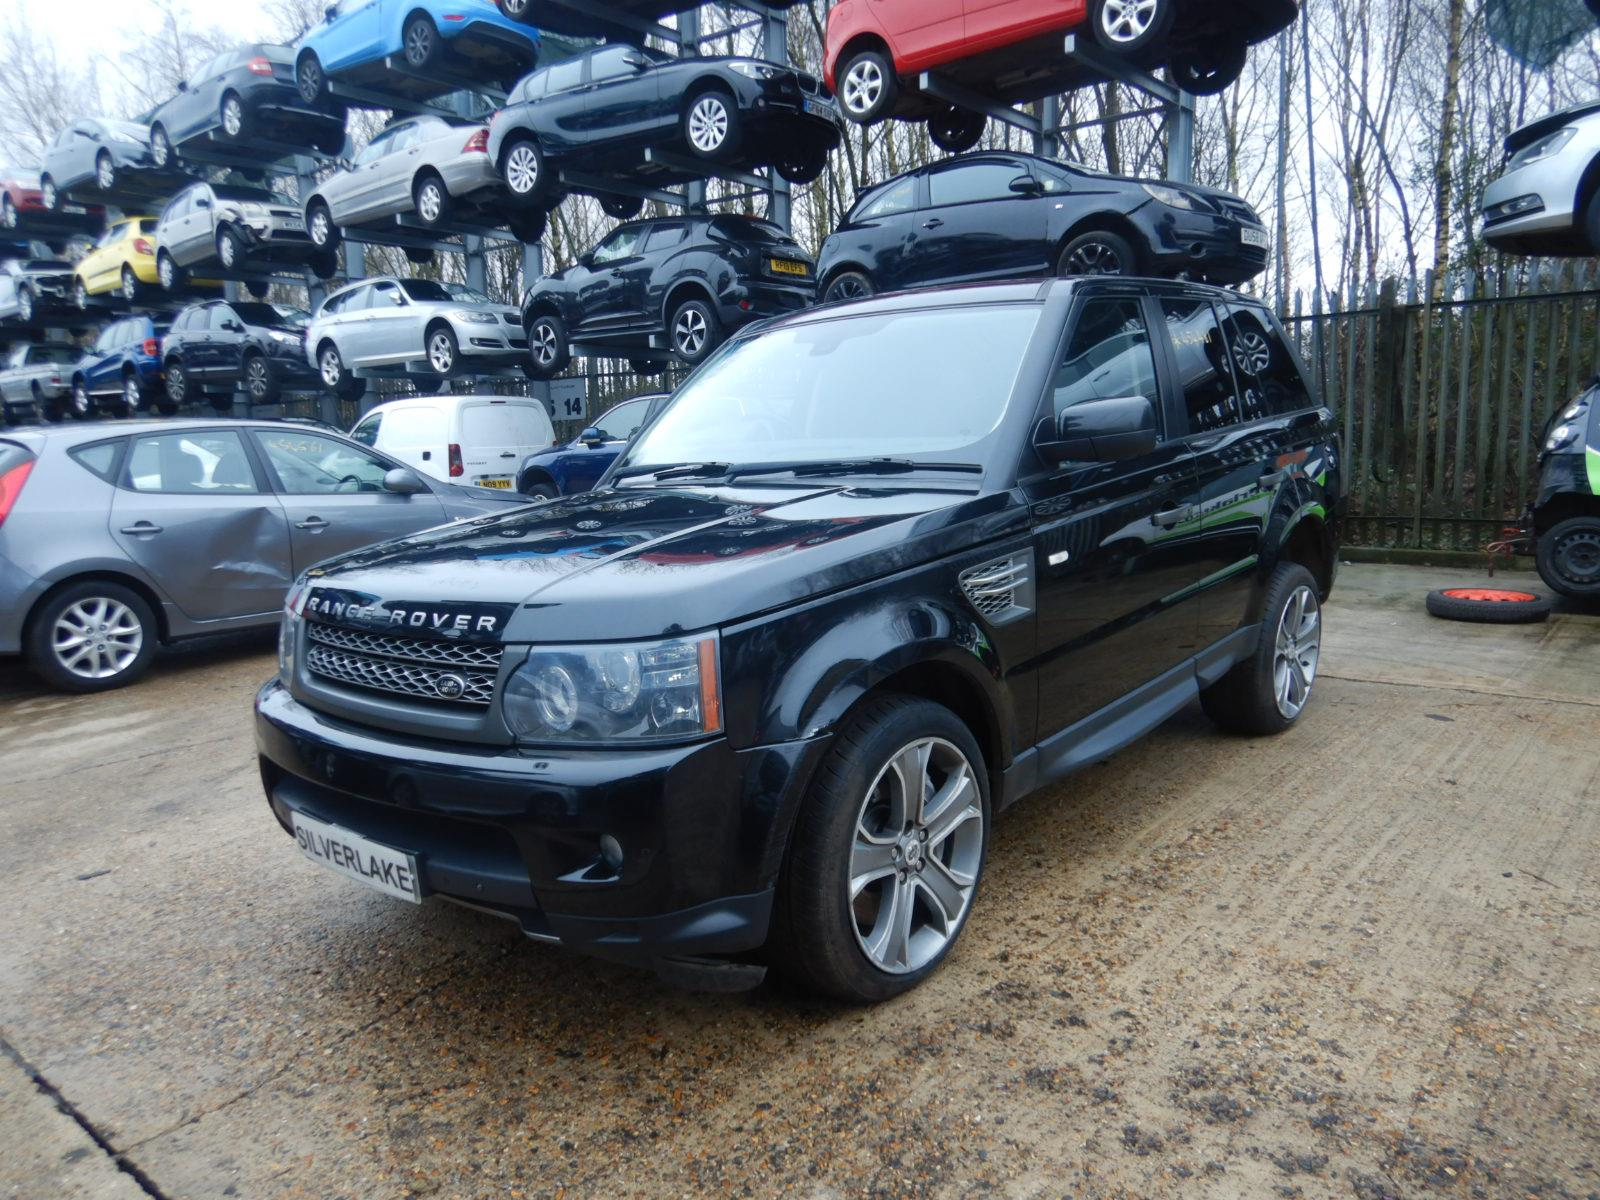 2010 Land Rover Range Rover HSE 5000cc Super Petrol Automatic 6 Speed 5 Door Estate